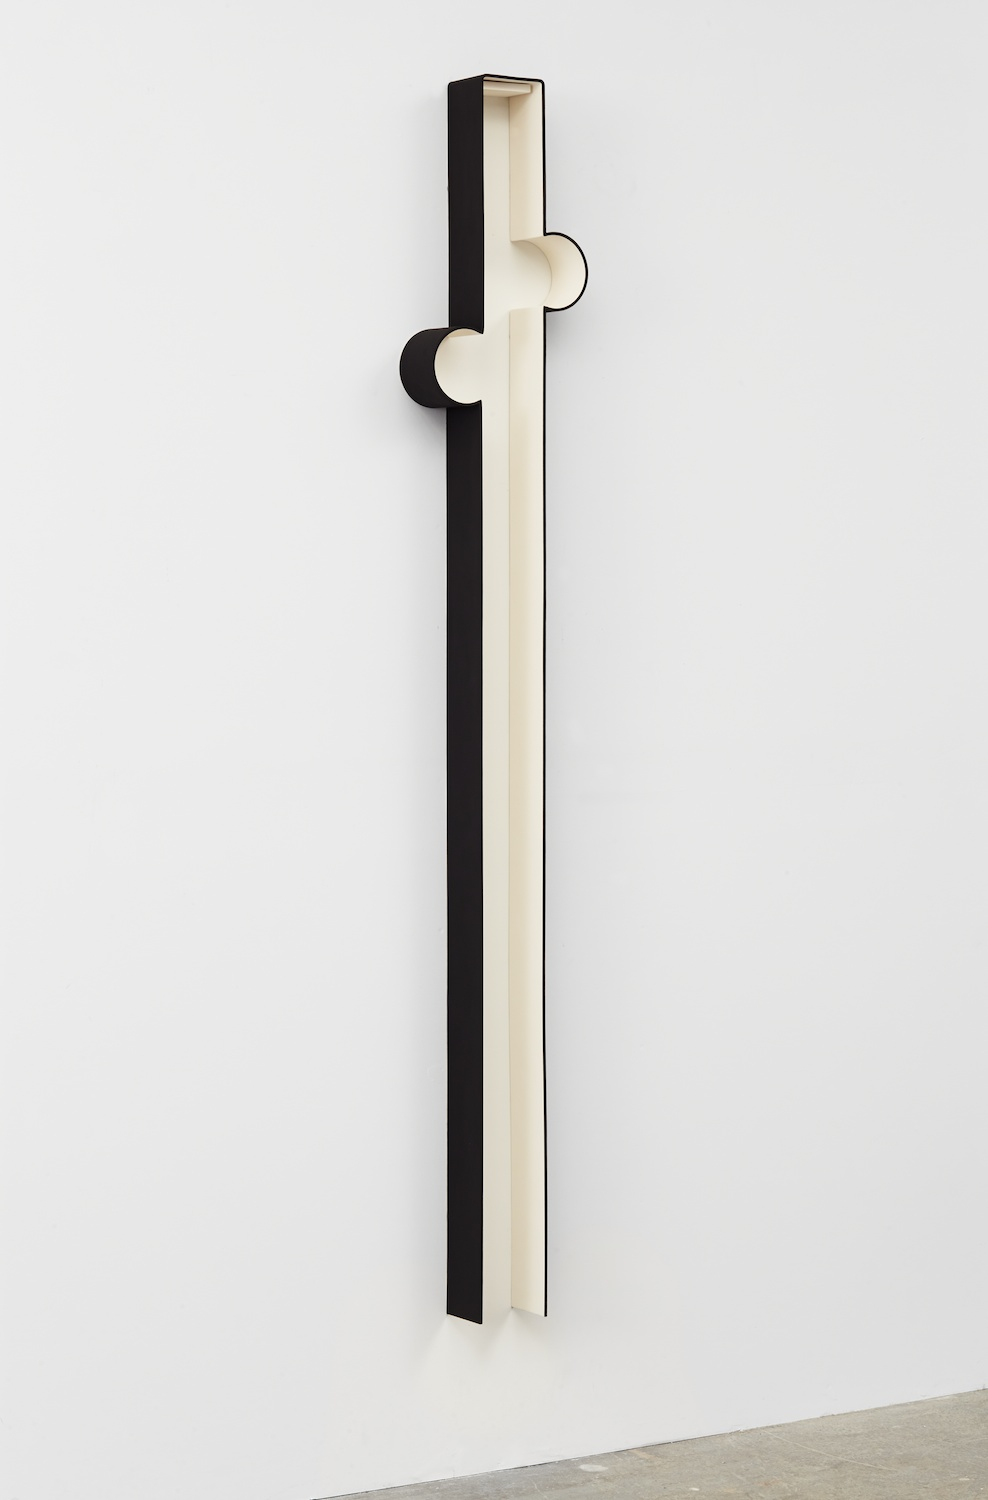 Lisa Williamson  Bump, Carol  2013 Acrylic on powder-coated steel 80h x 14w x 4d in LW118